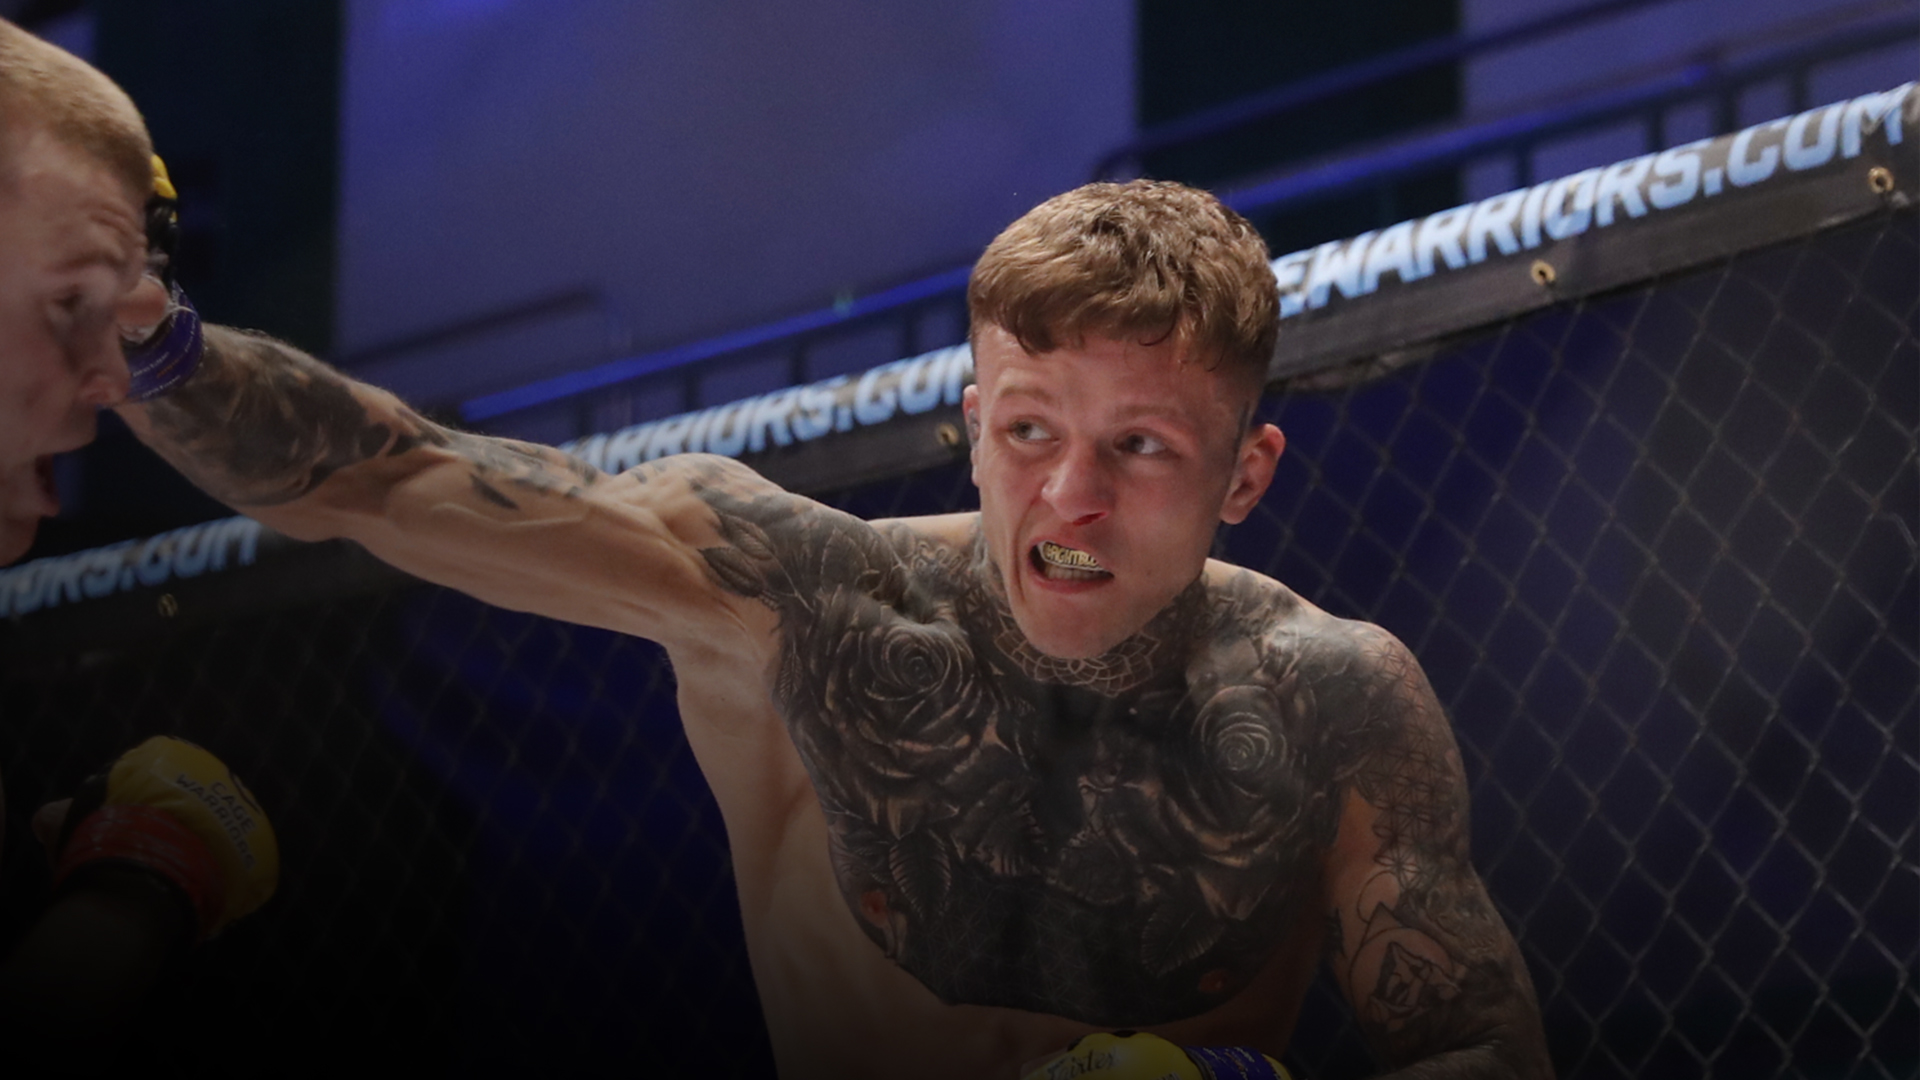 Jordan Lucenic punches an opponent during a fight in the Cage Warriors promotion.